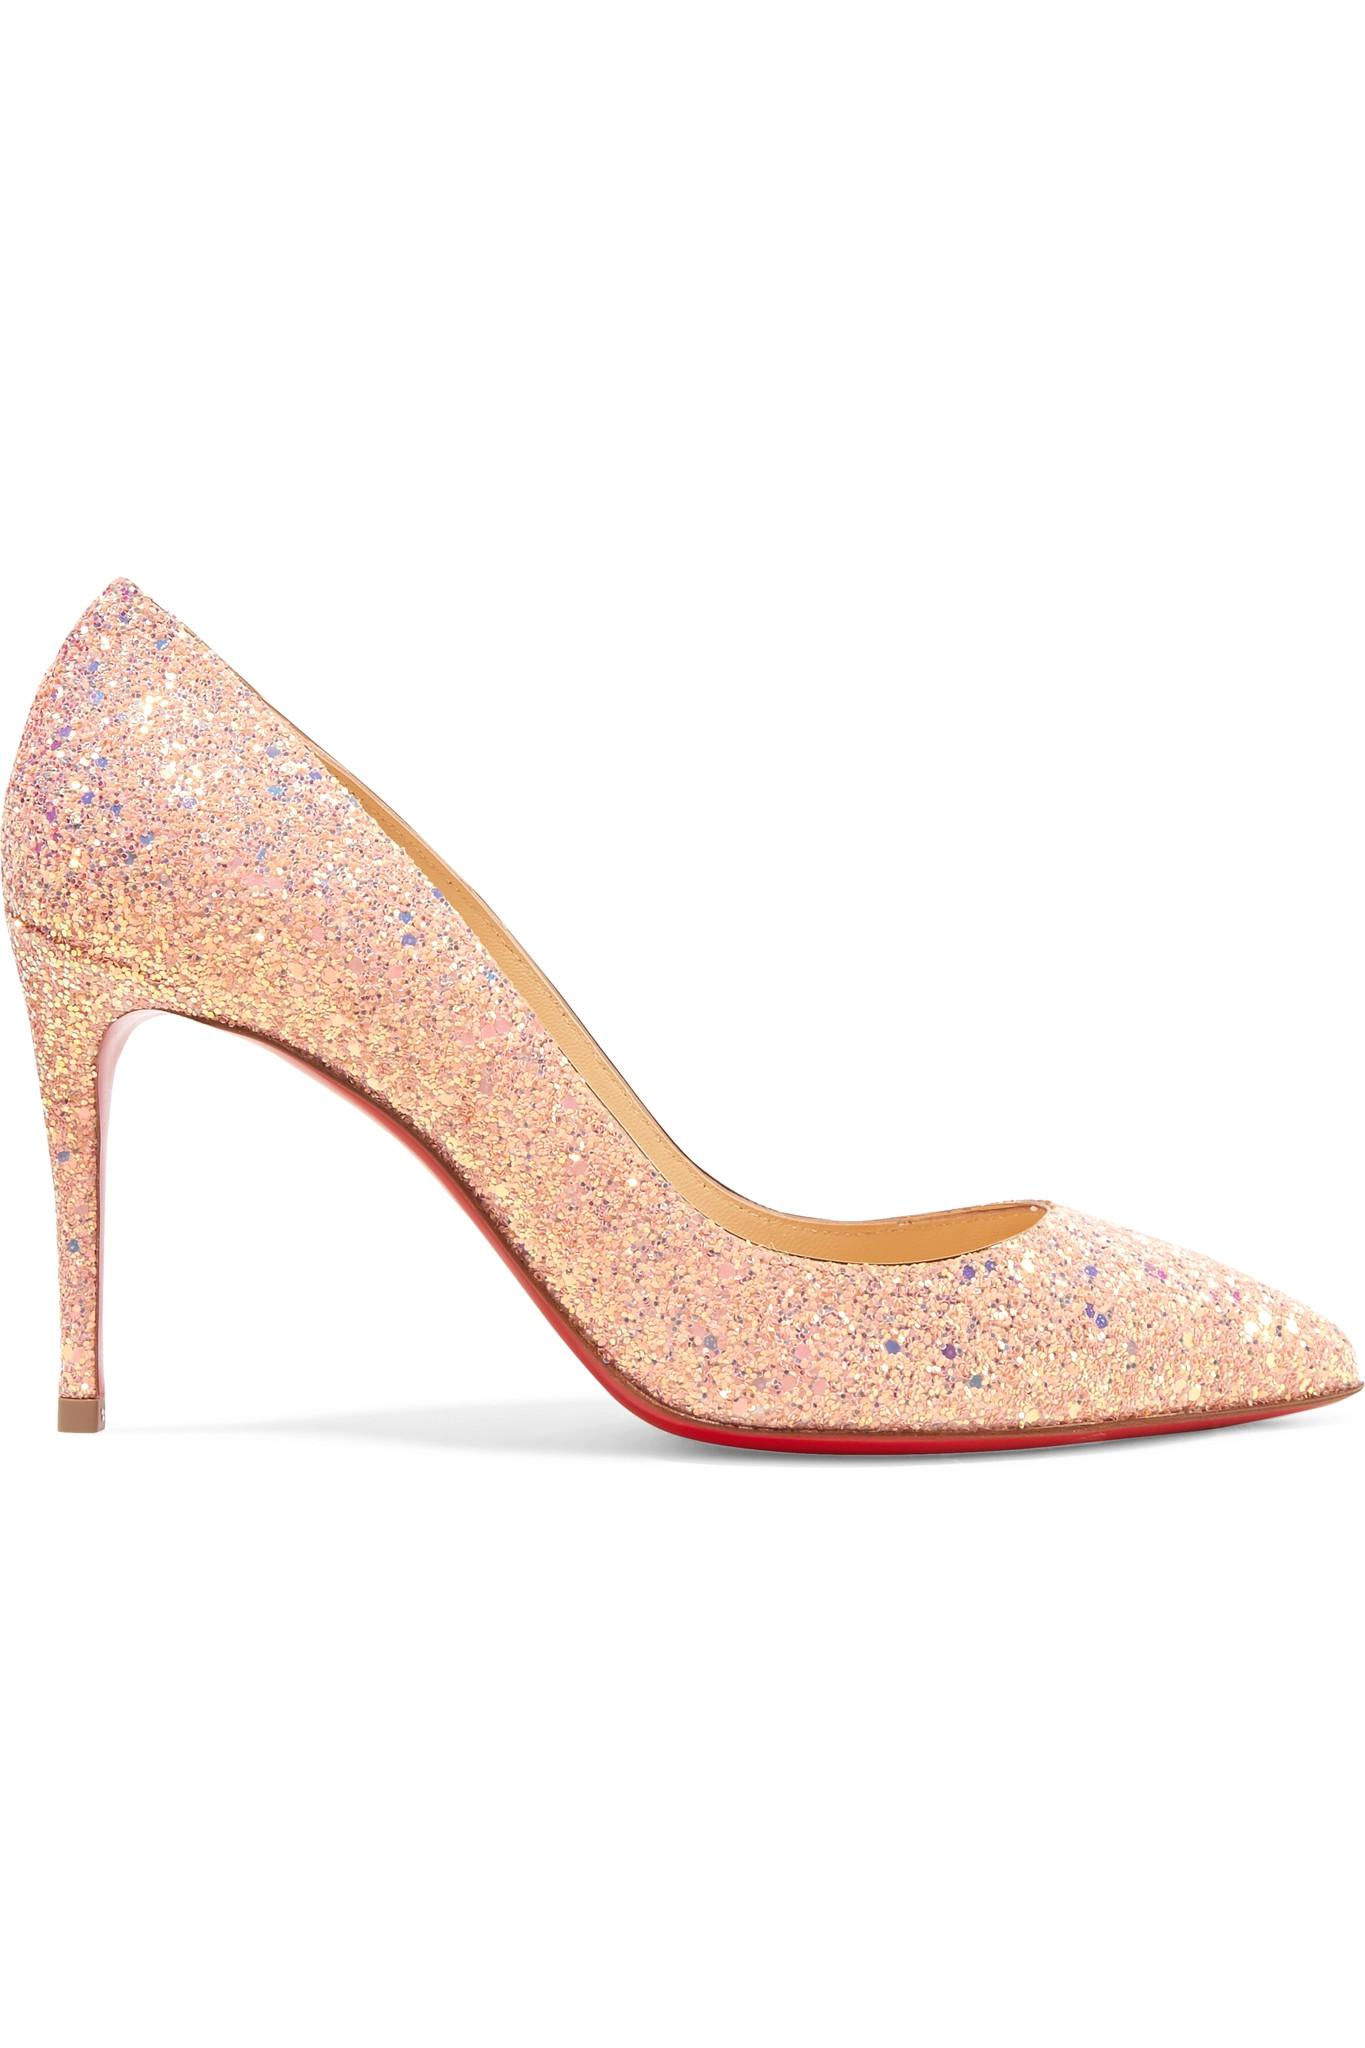 ade4070677e8 Christian Louboutin. Women s Pink Pigalle Follies 85 Glittered Leather Pumps